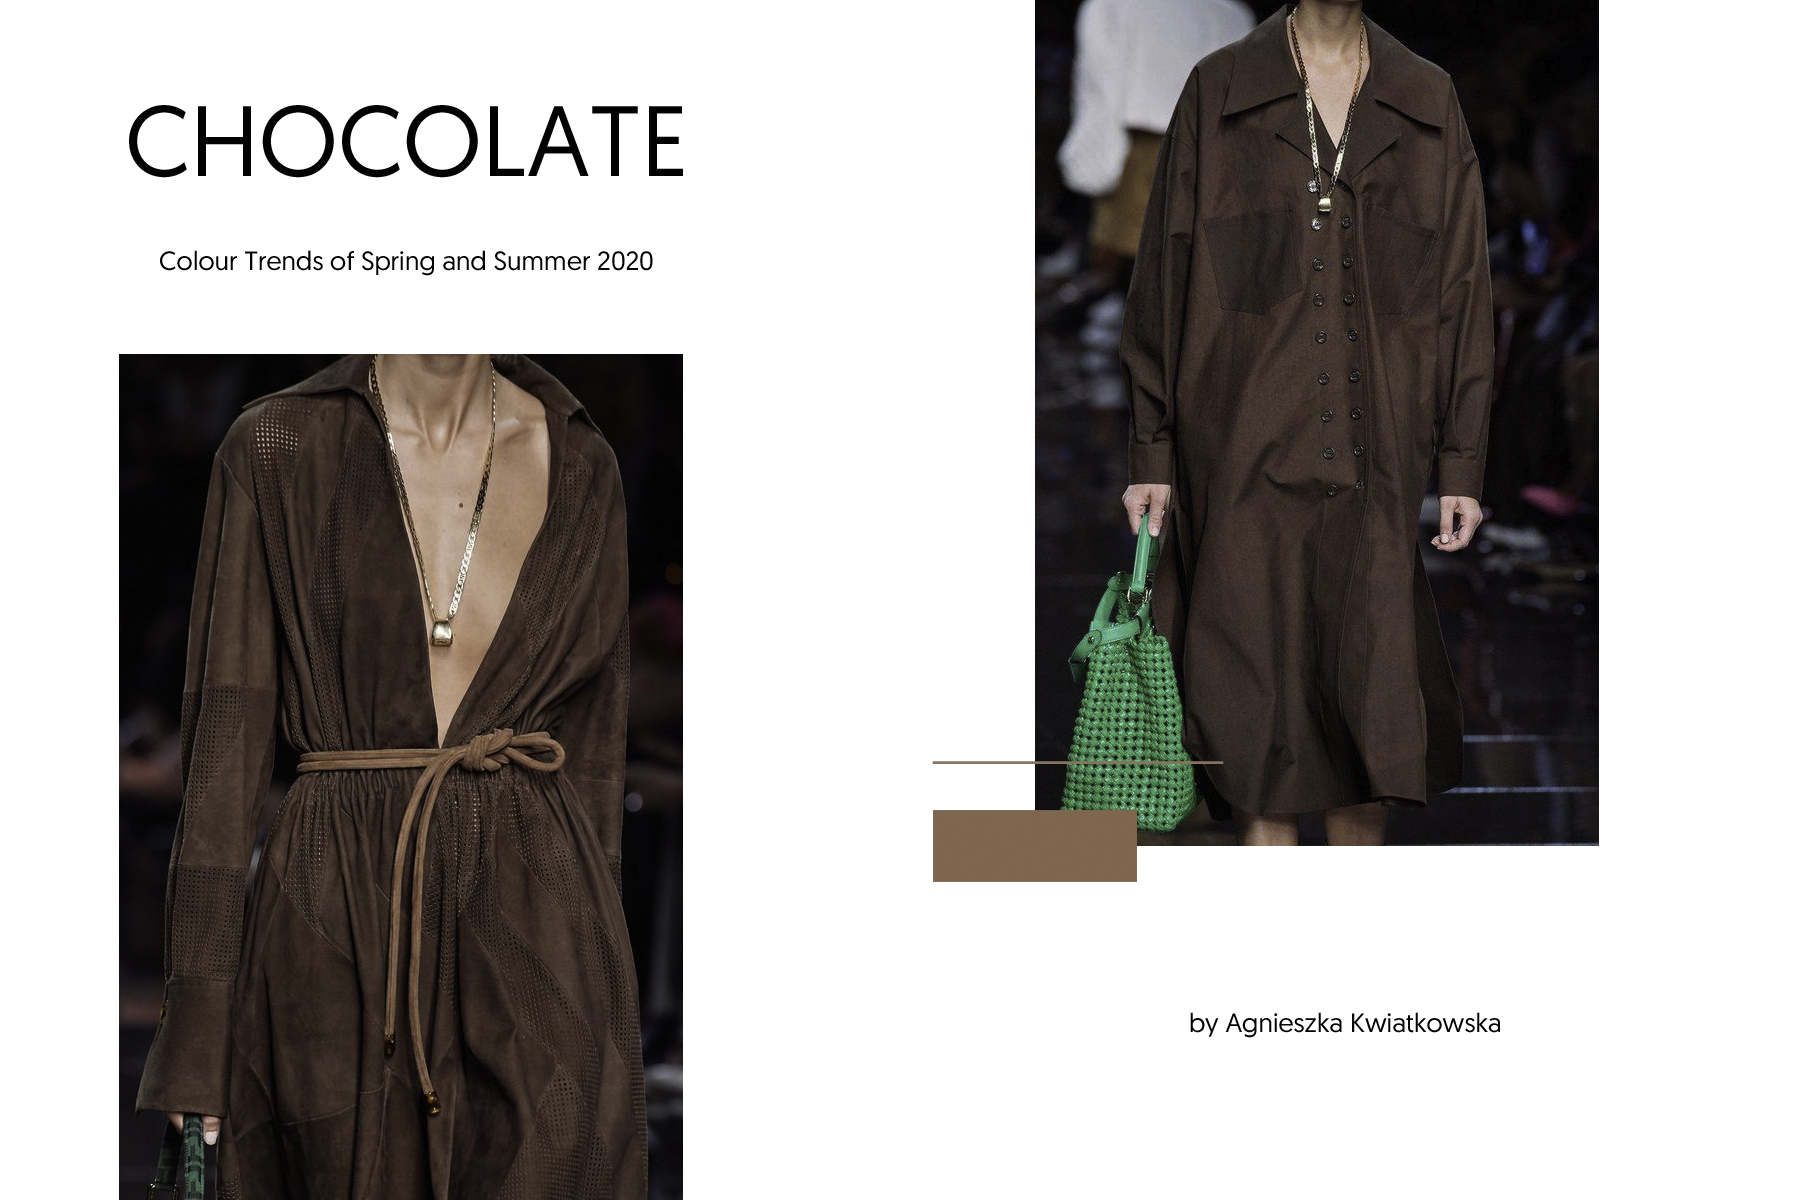 CHOCOLATE and BROWN color trends Spring and Summer 2020